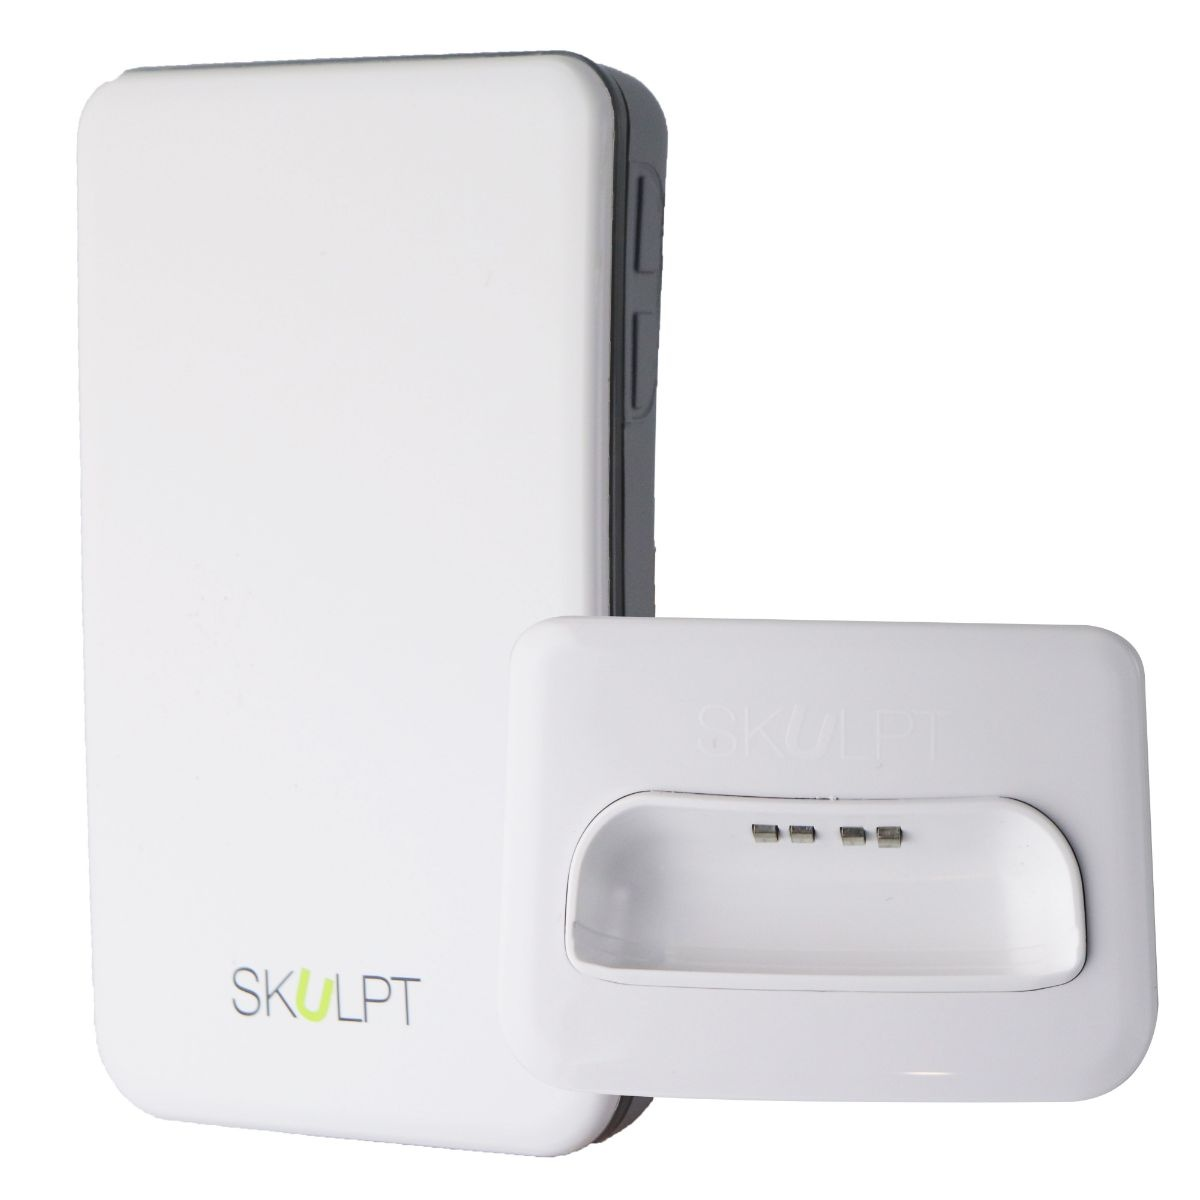 Skulpt Muscle/Fat Body Scanner and Personalized Workout Builder